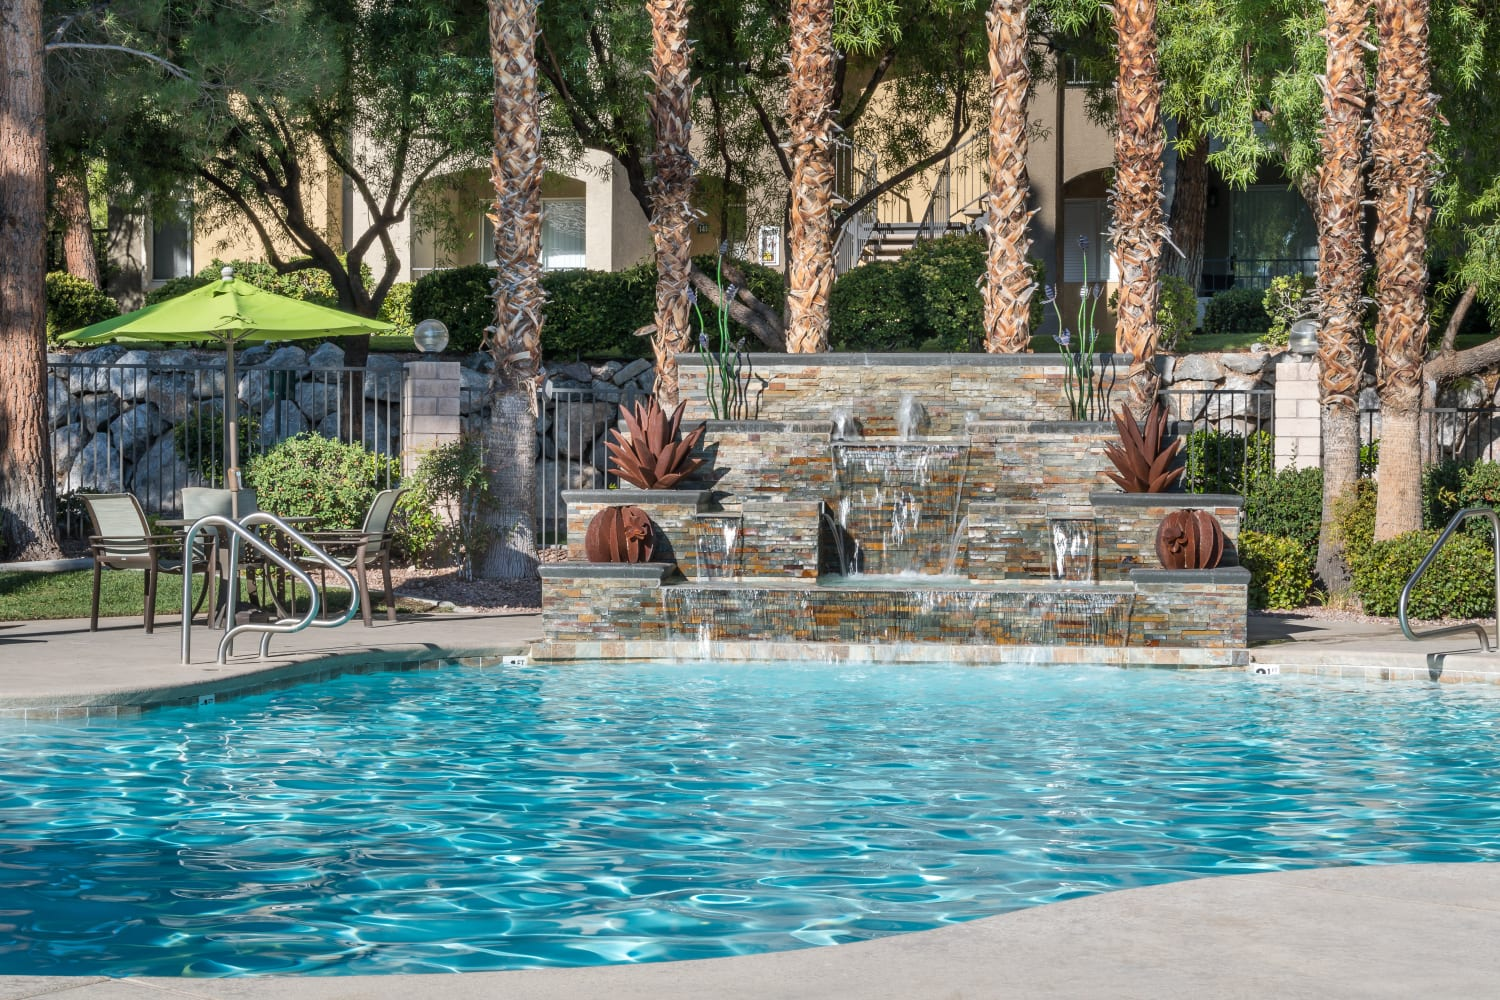 Have fun in a swimming pool with a waterfall at Rancho Destino Apartments in Las Vegas, Nevada